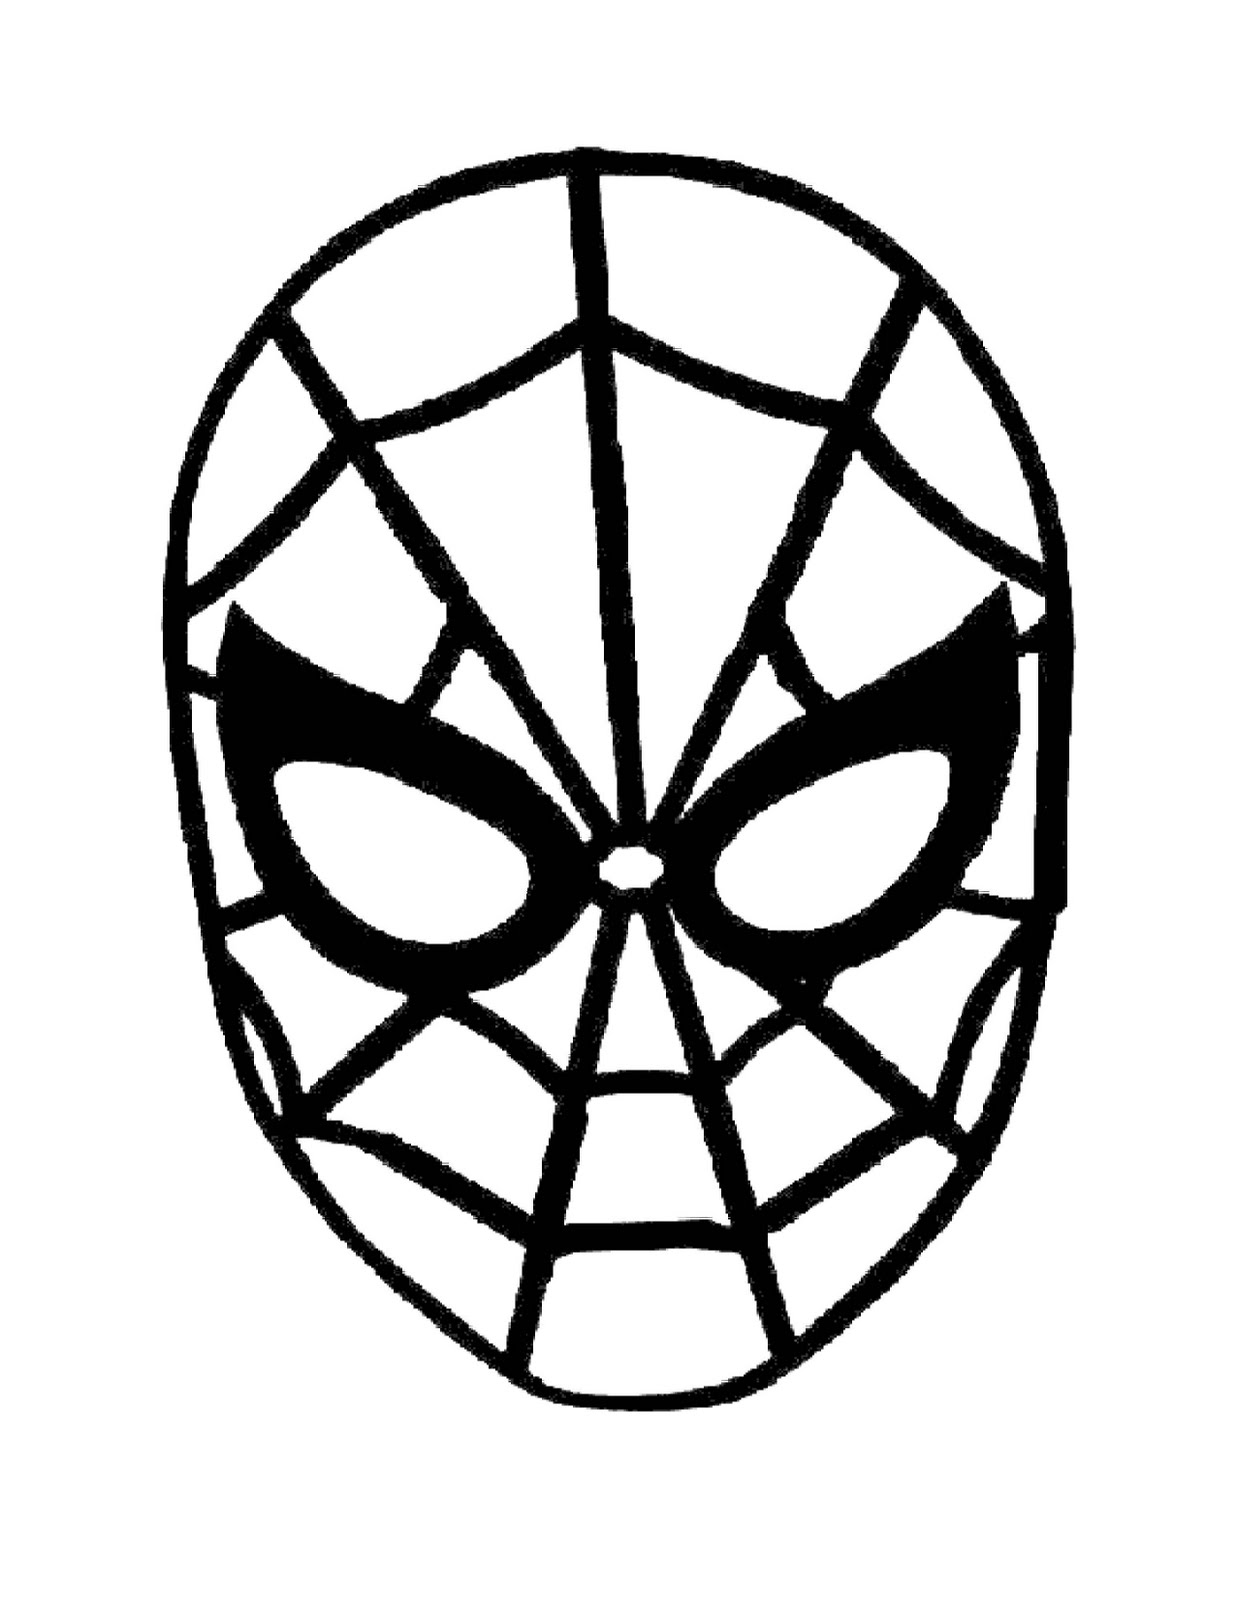 Spiderman Dibujos Para Pintar Colorear E Imprimir Tattoo